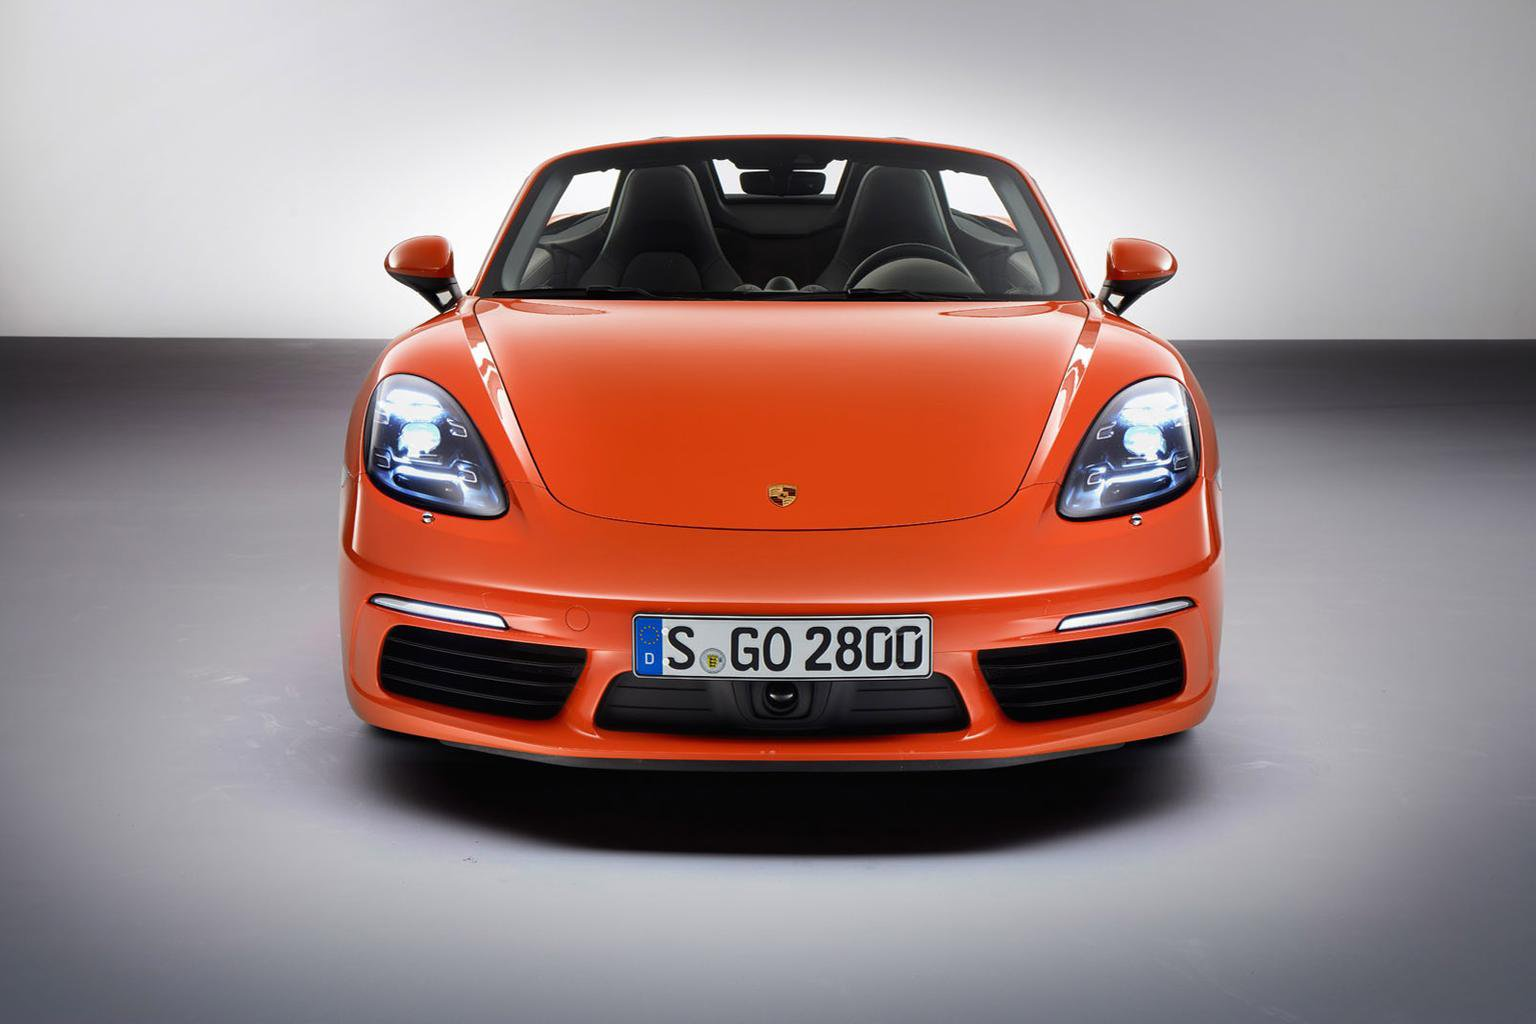 New Porsche 718 Boxster revealed